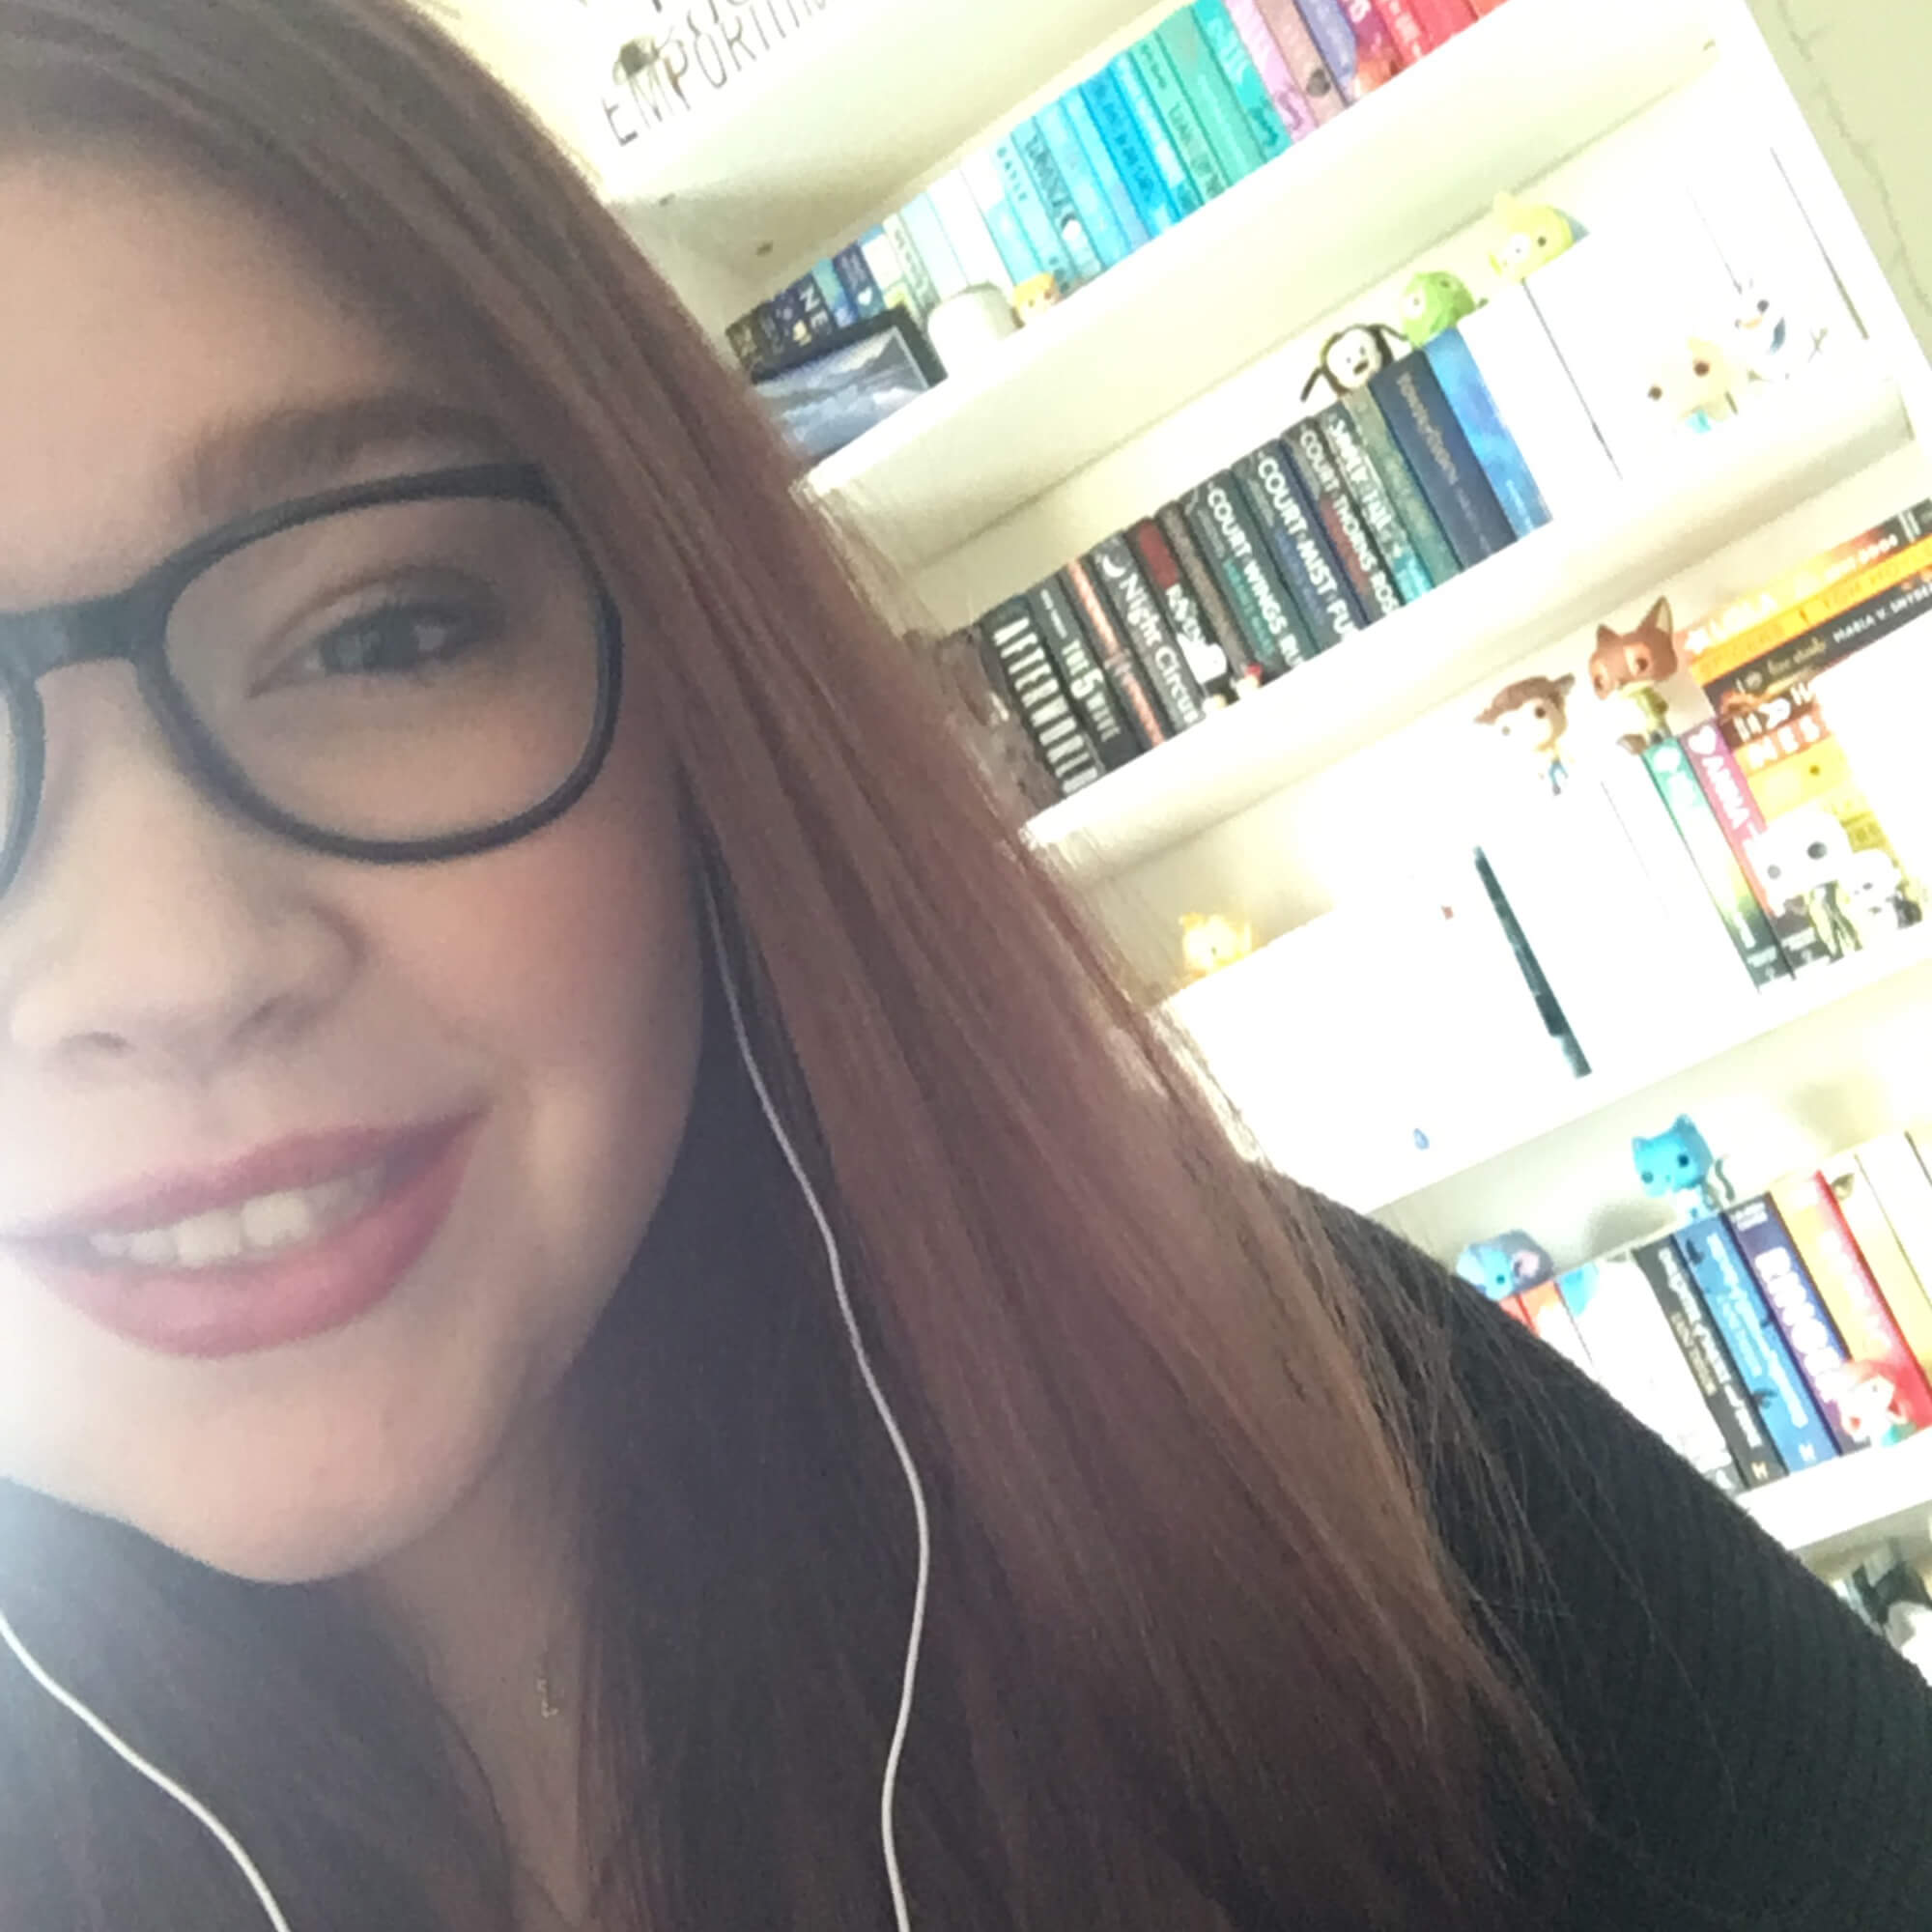 Lauren smiling in front of a bookcase.